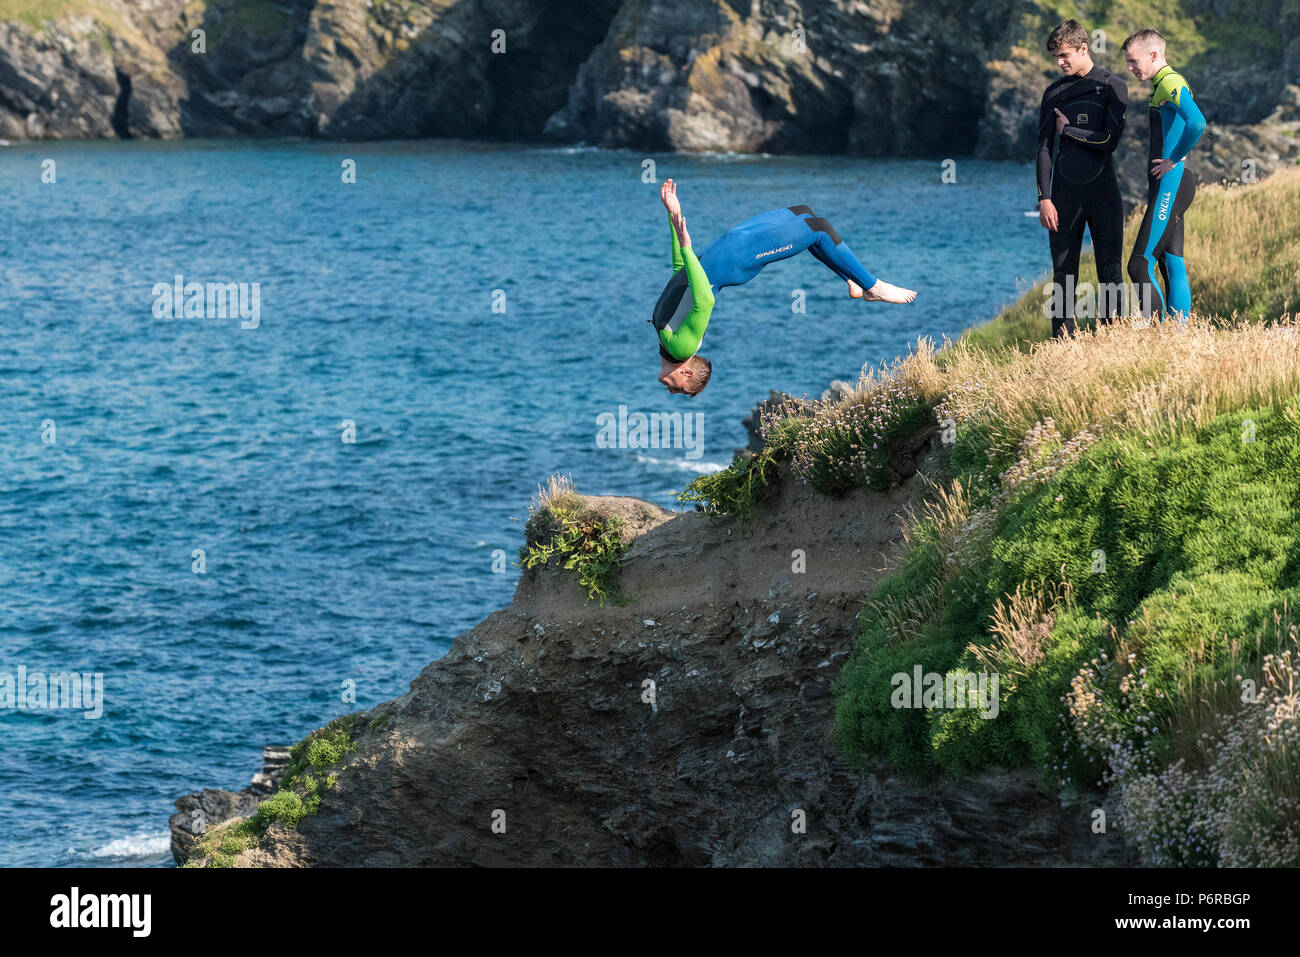 The dangerous craze of tombstoning off rocks at Newquay in Cornwall. Stock Photo